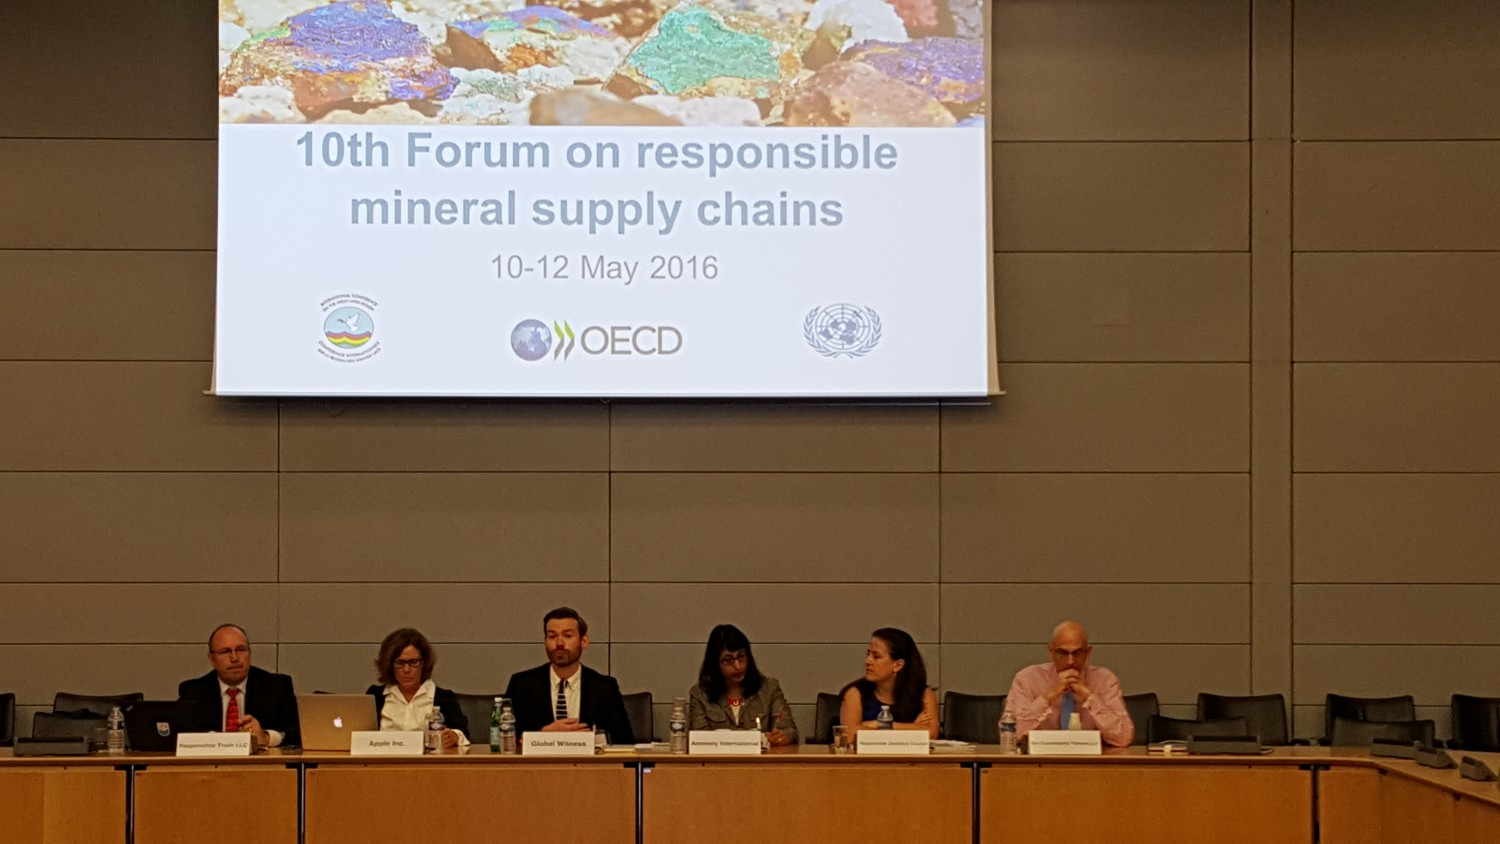 Highlights from 10th Forum on Responsible Mineral Supply Chains